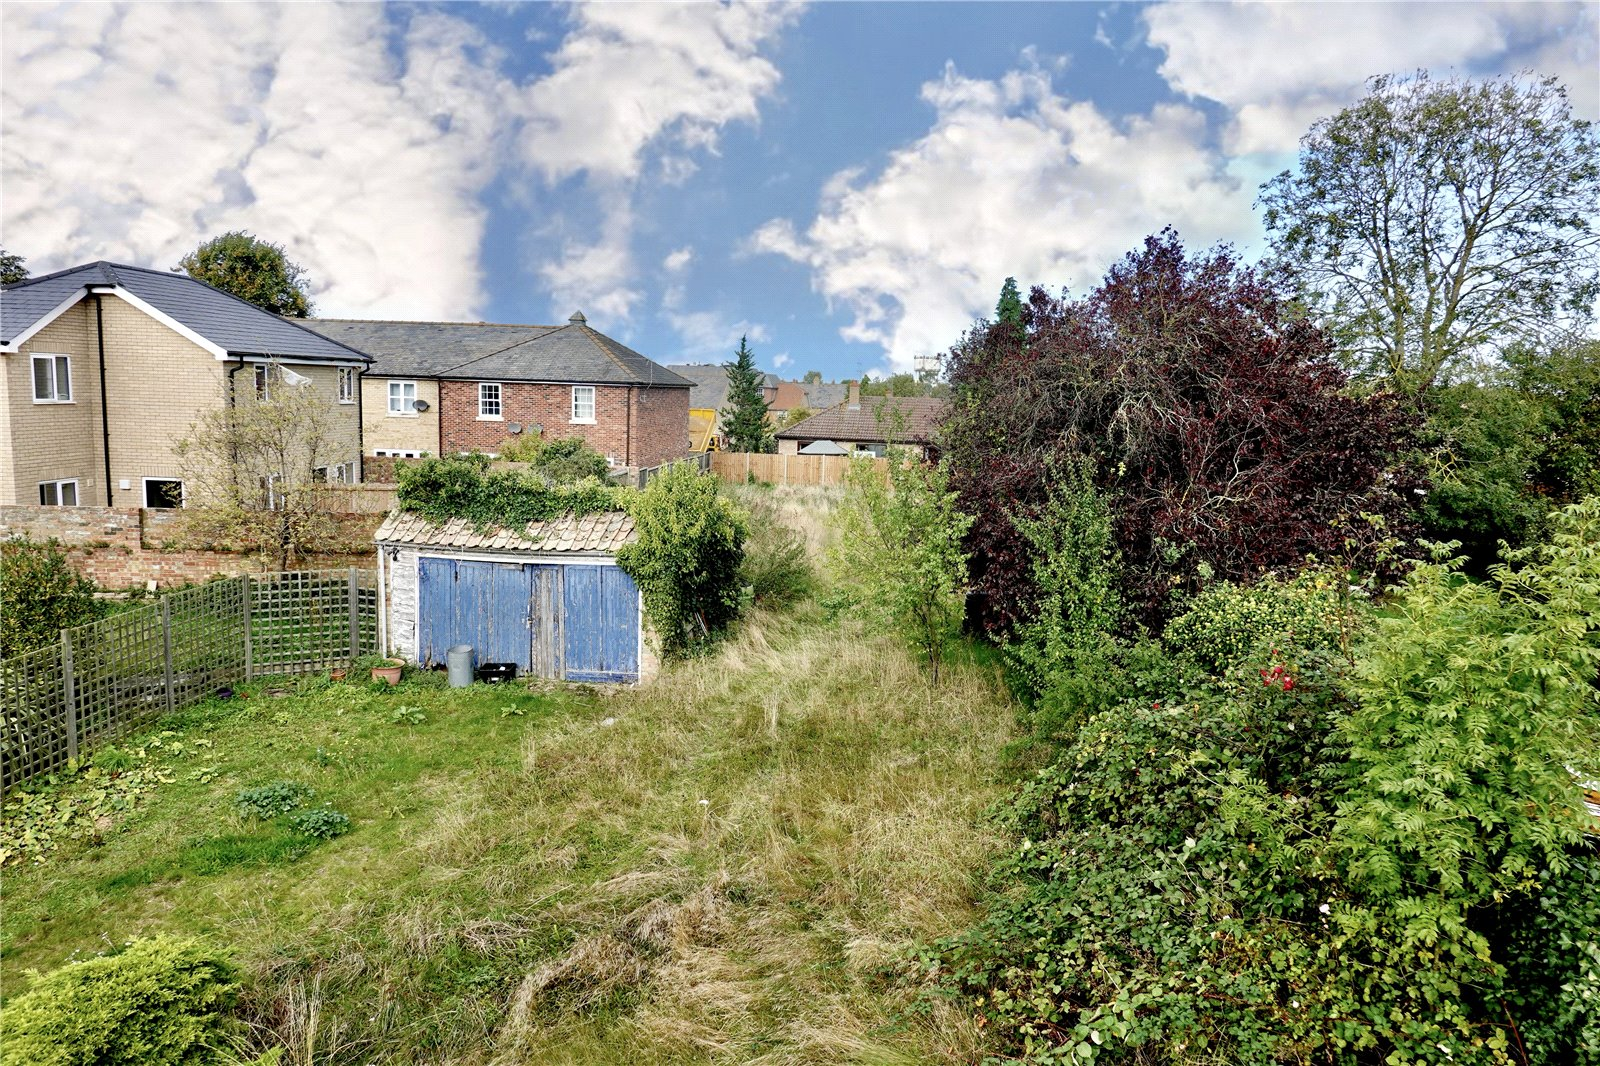 Land (residential) for sale in Sutton, CB6 2RB  - Property Image 5